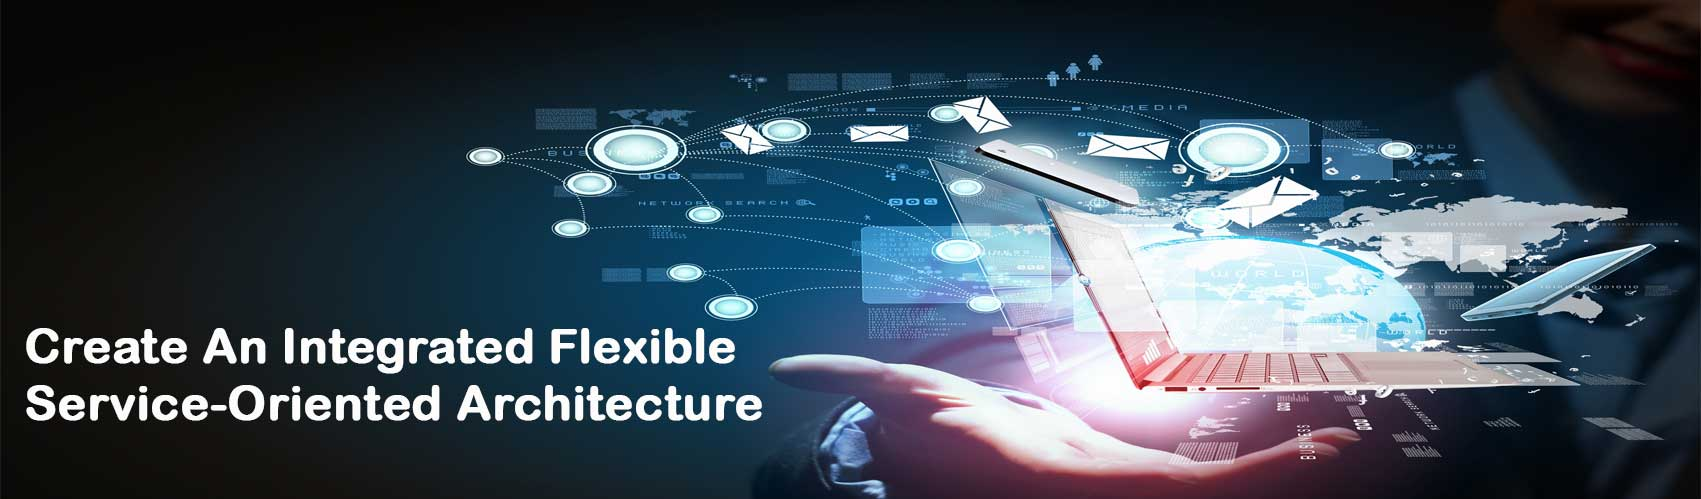 IT Strategy and Architecture